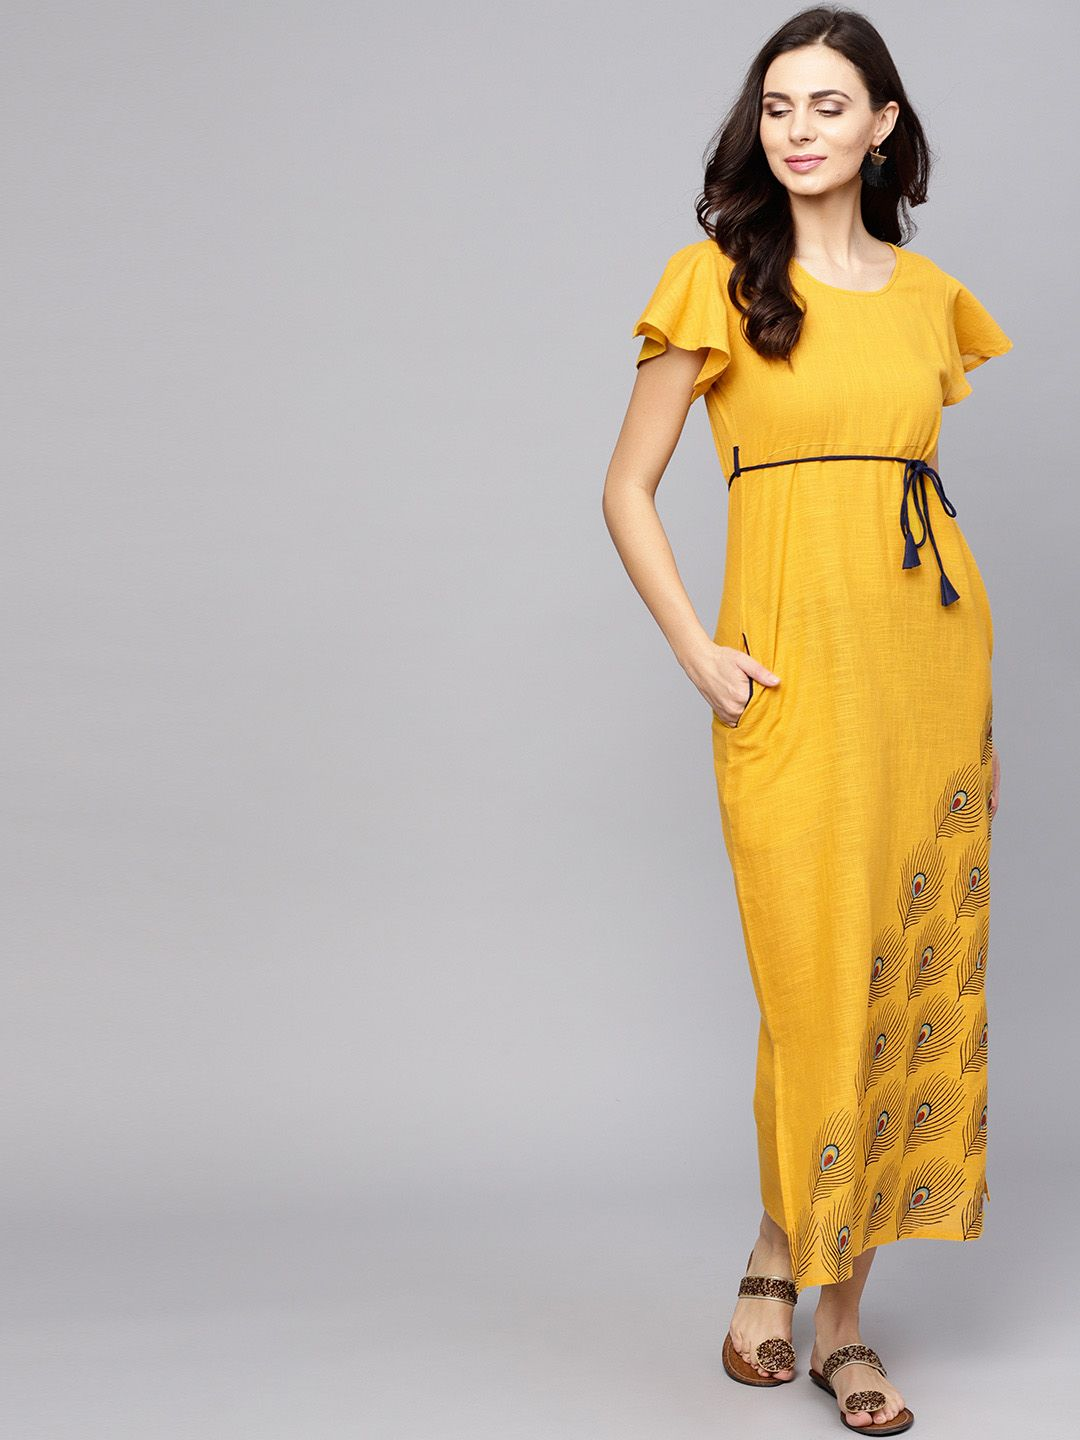 343ef09d43c2 I love this AKS Women Mustard Yellow Solid Maxi Dress - Dresses for Women  7702707